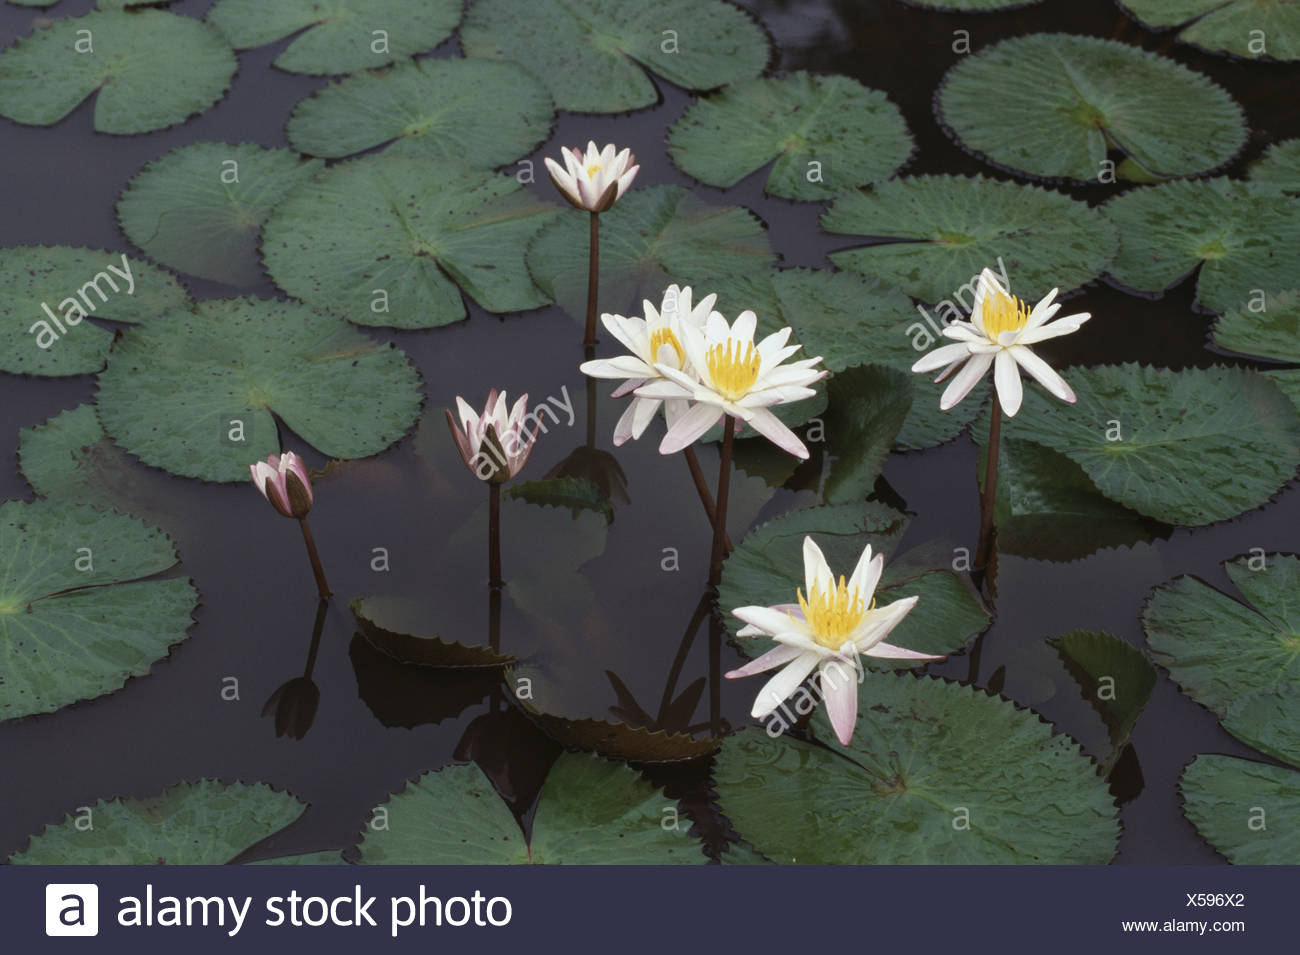 Water lilies in pond tamil stock photos water lilies in pond tamil water lilies in a pond tamil nadu india stock image izmirmasajfo